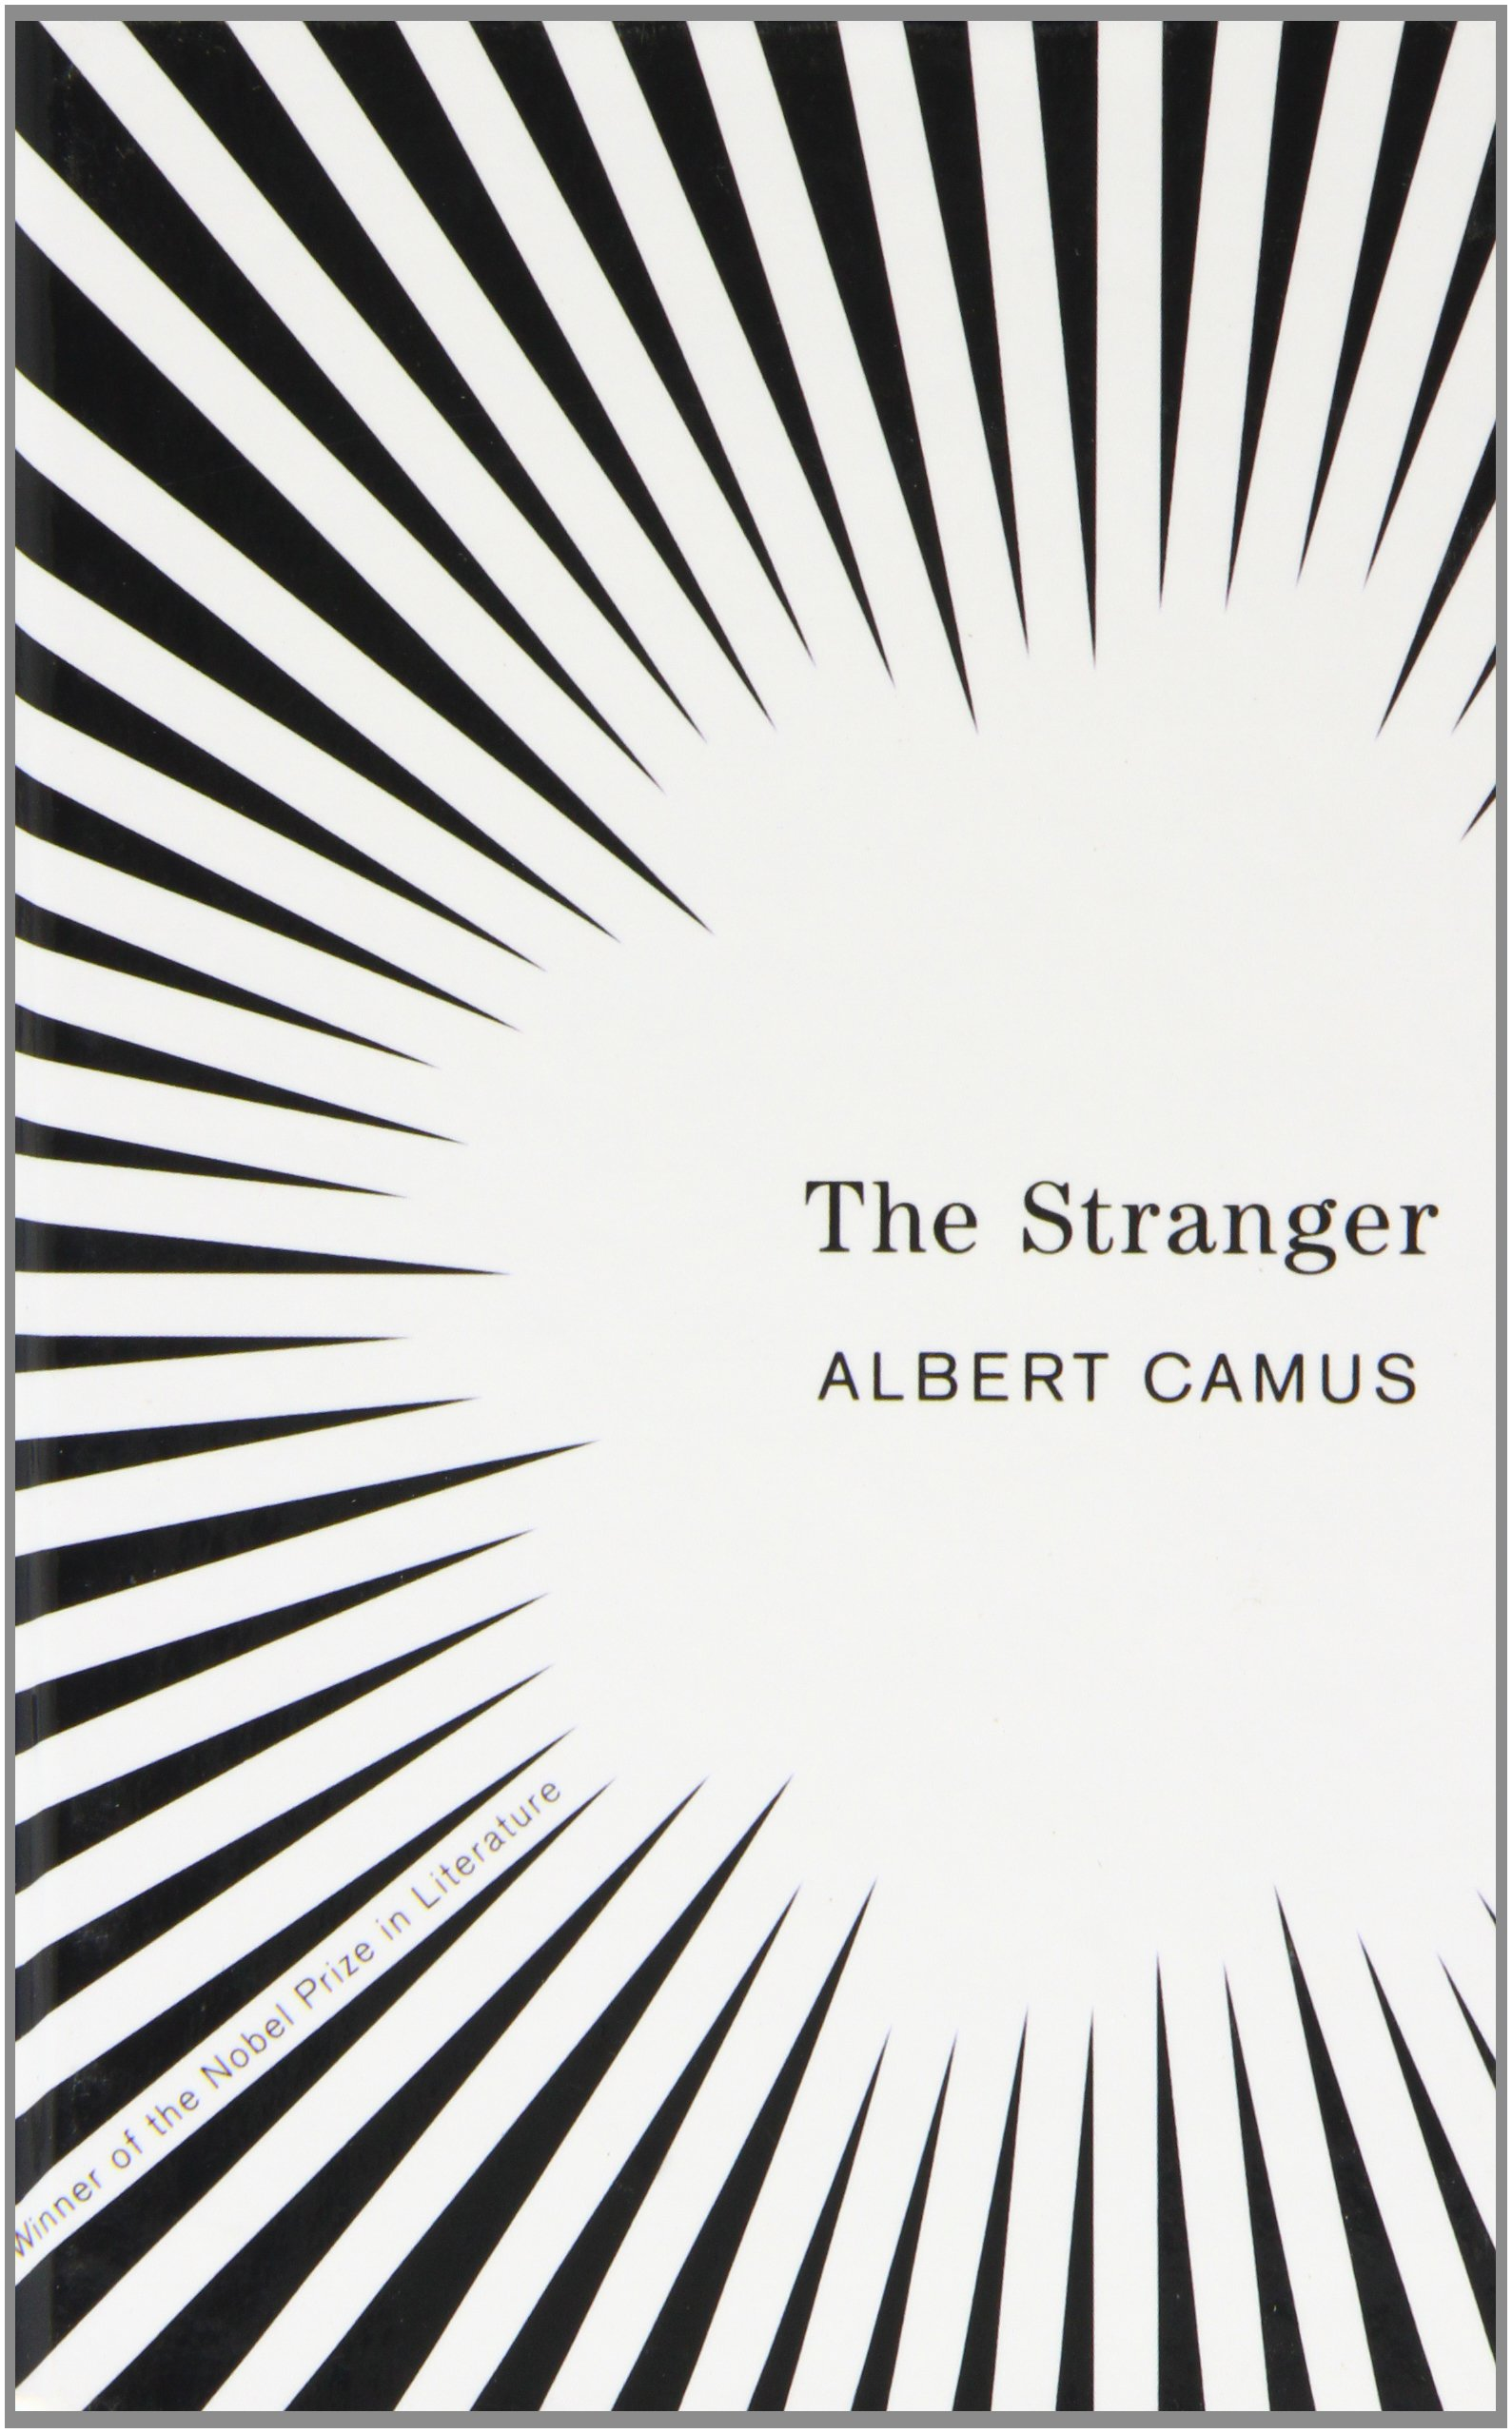 the stranger albert camus essay analysis of the funeral scene in  the stranger albert camus matthew ward the stranger albert camus matthew ward 9781439570999 literature amazon